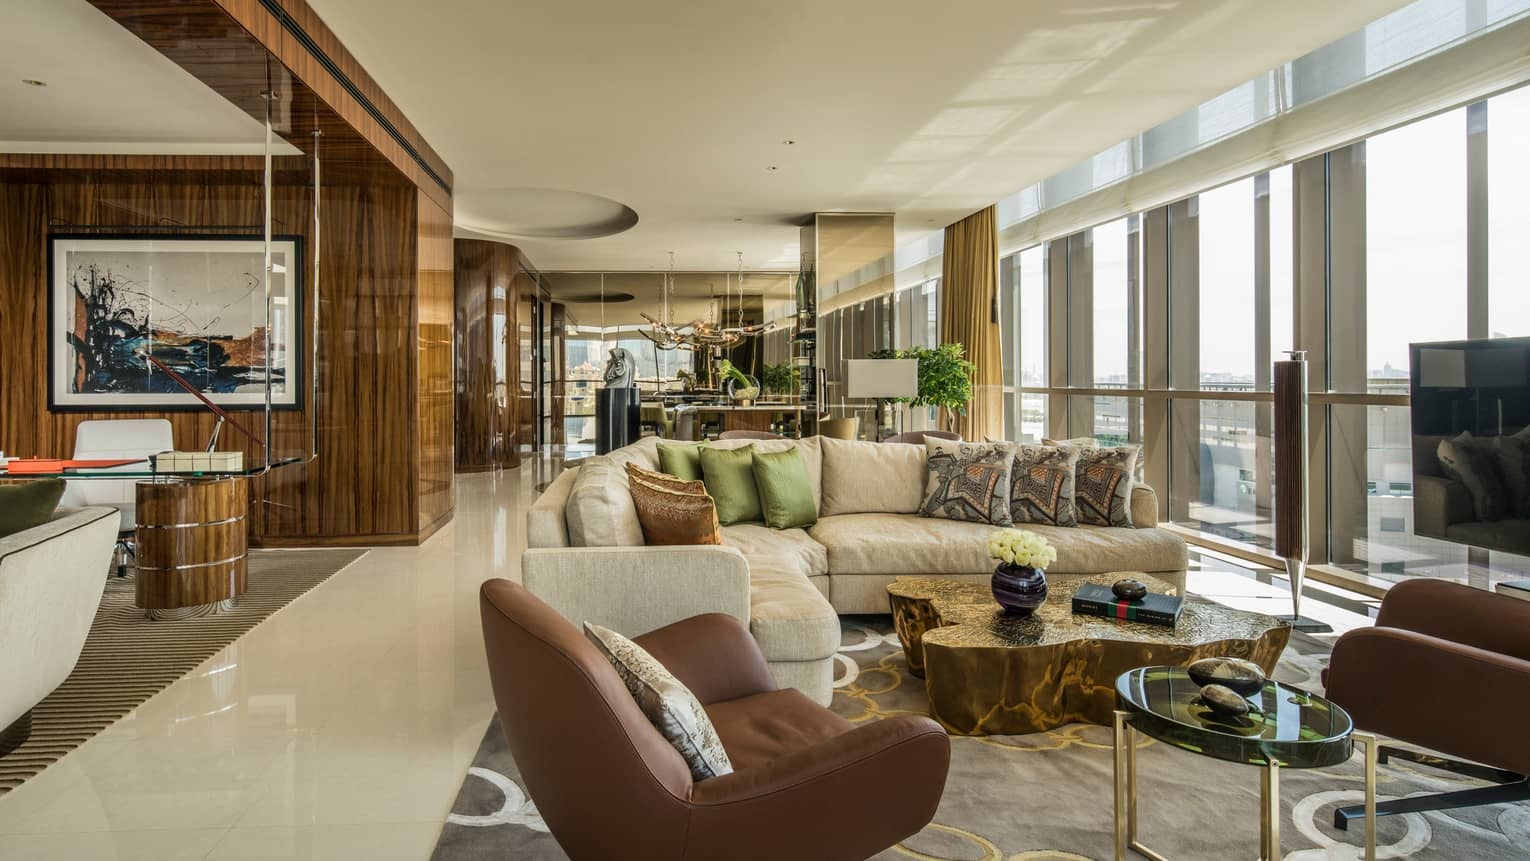 Penthouse Suite with large L-shaped beige sofa with pillows, leather armchairs, floor-to-ceiling windows along wall